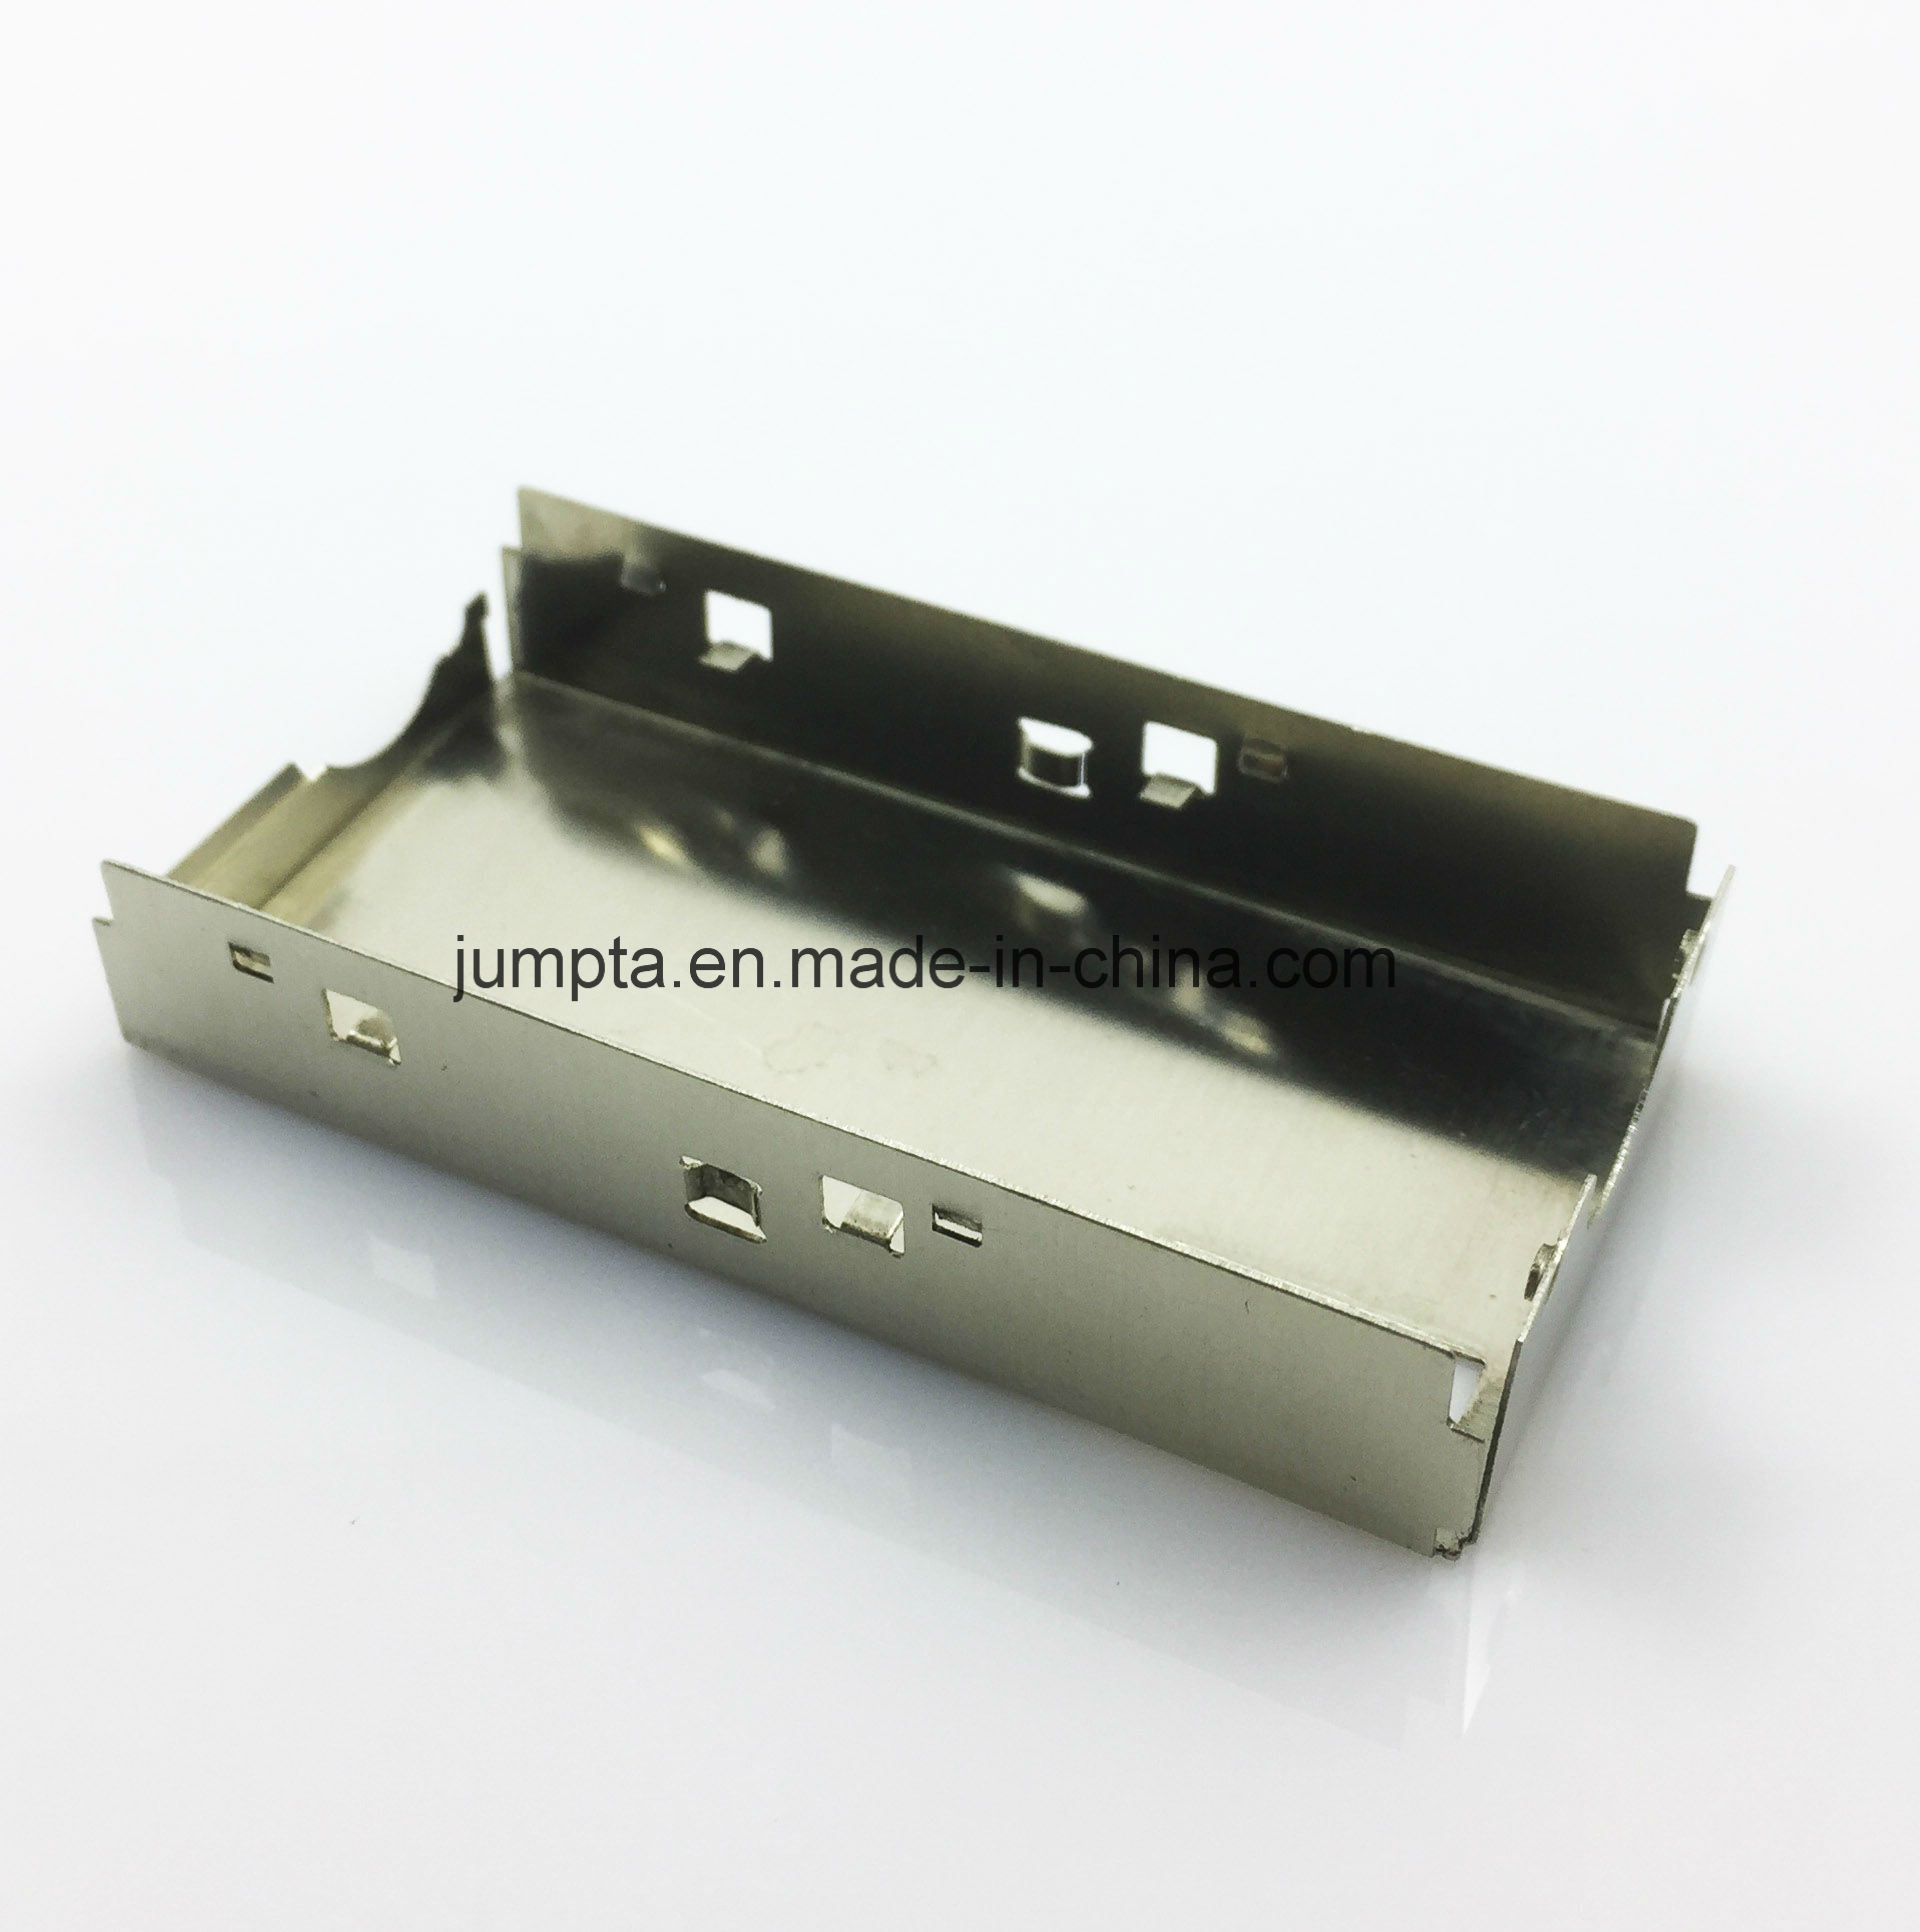 China Electronic Circuit Board Parts Stainless Steel Bracket Of A Stamping Manufacturing Metal Products Hardware